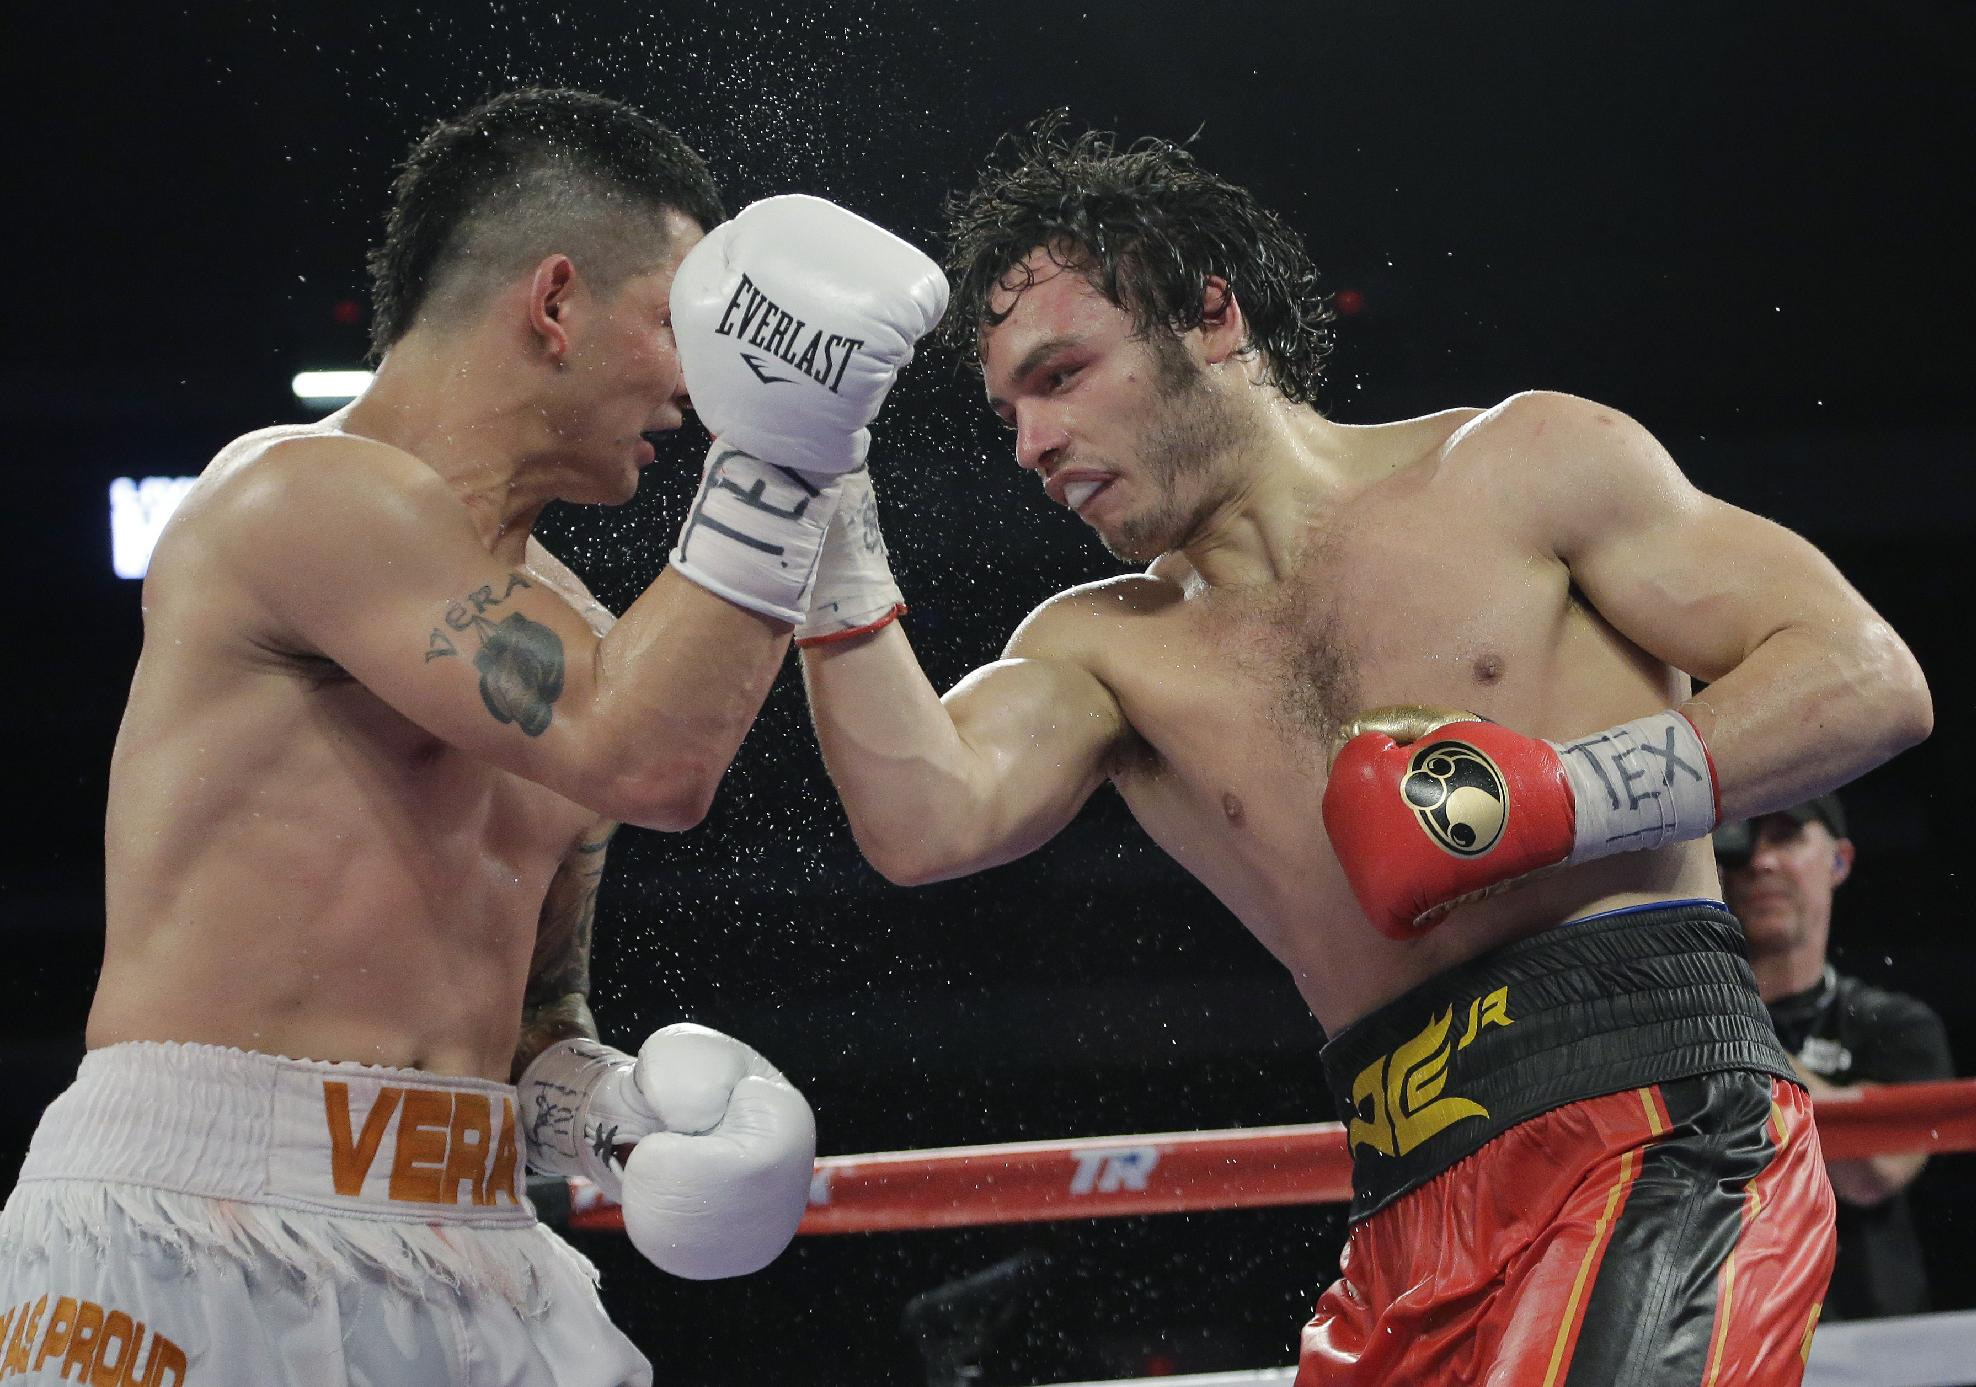 Chavez Jr. unanimously outpointed Vera